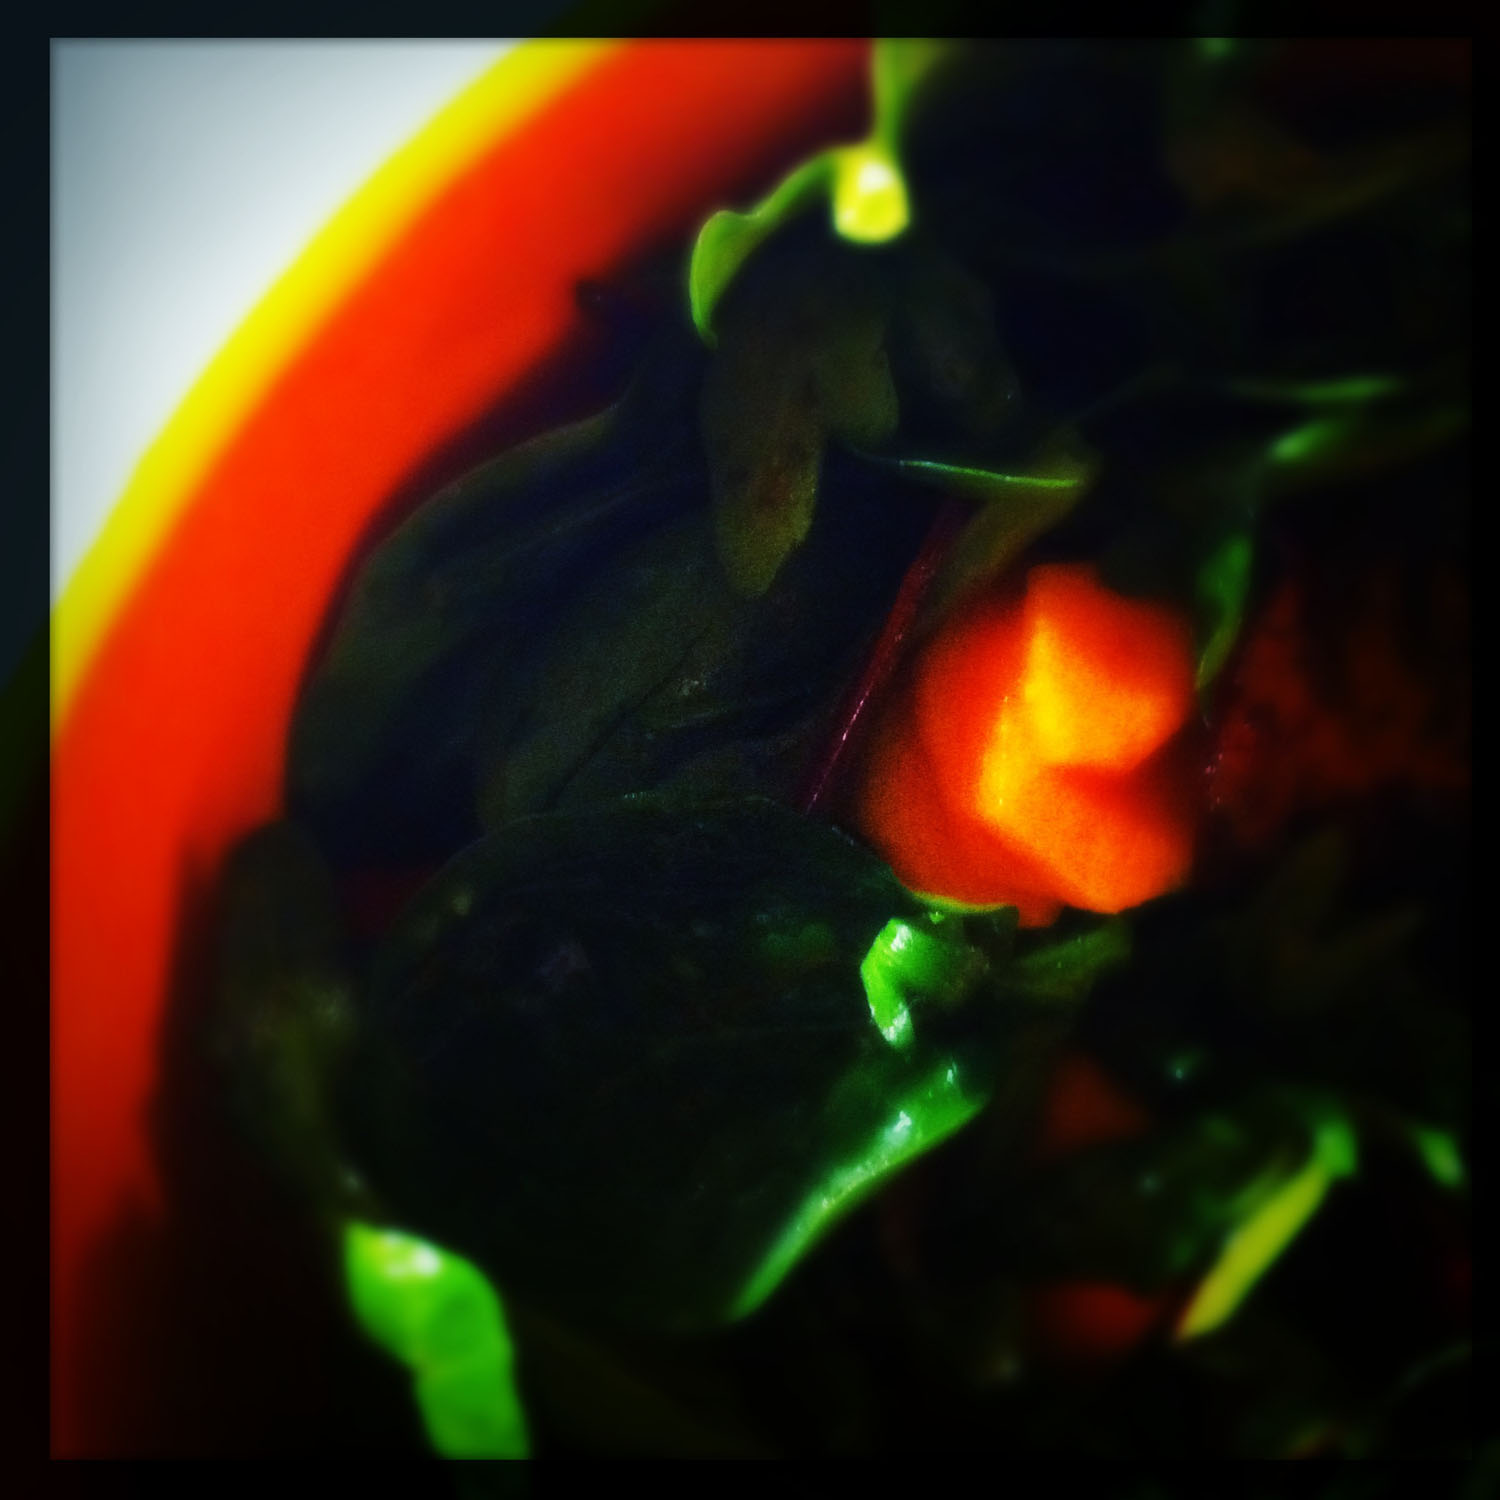 iPhoneography: glowing carrot in salad